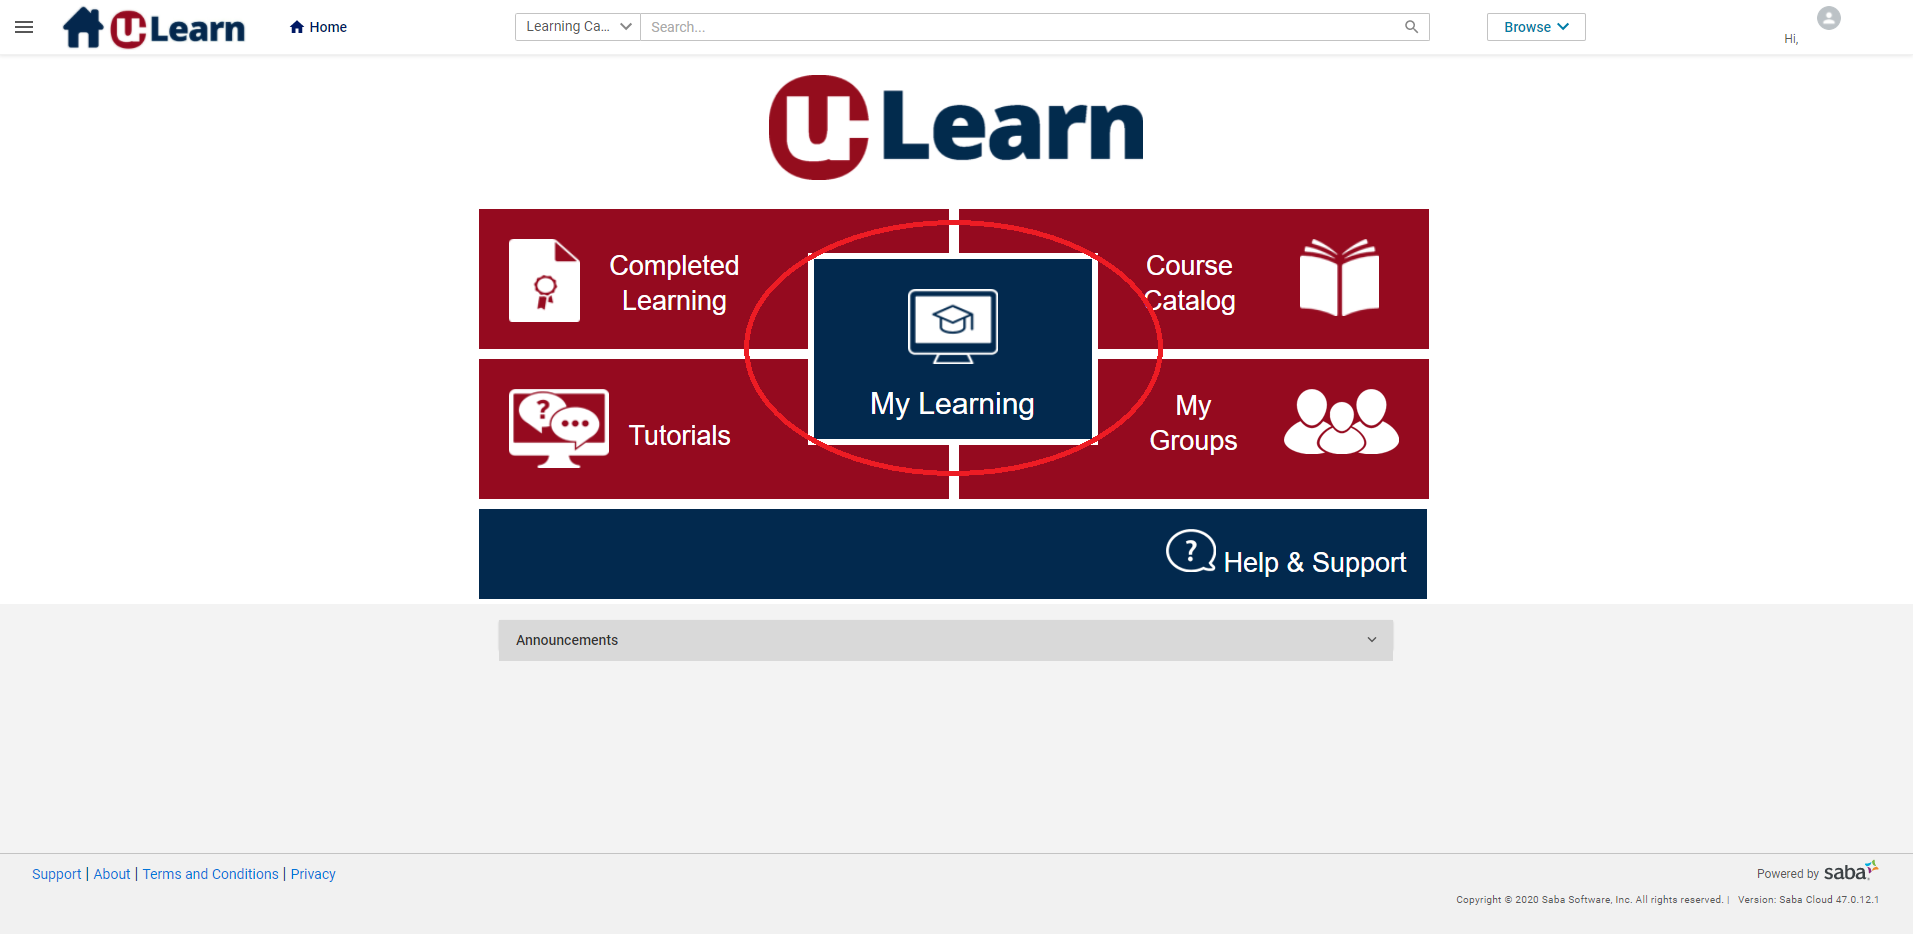 Home page for Learn@UW internal home page with My Learning button circled